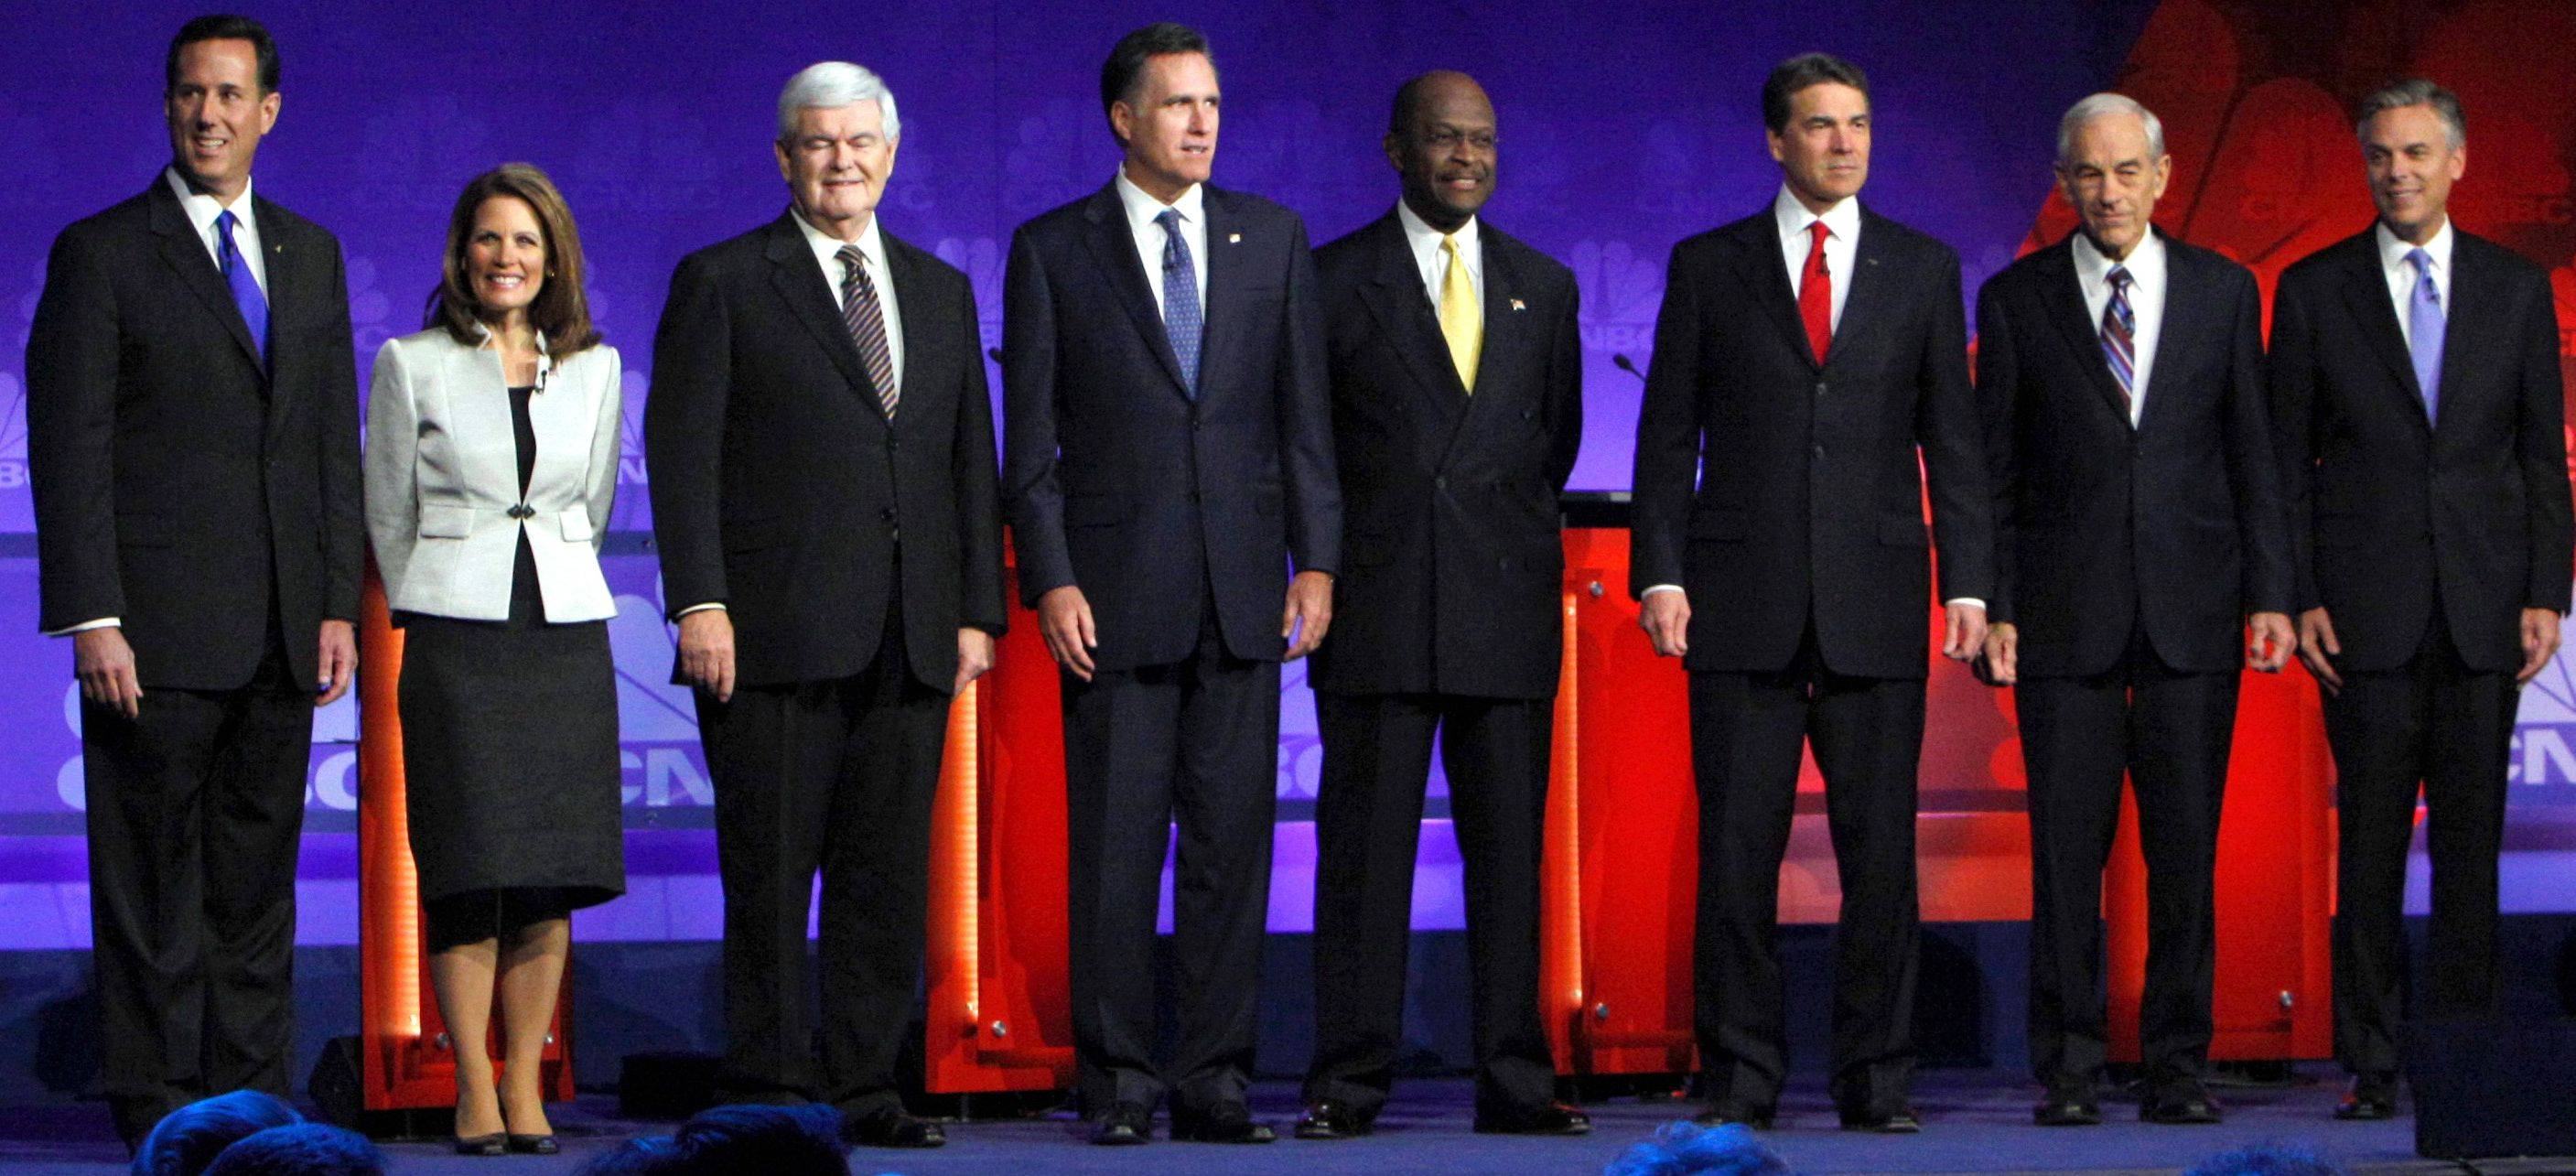 GOP candidates focus on economy at debate